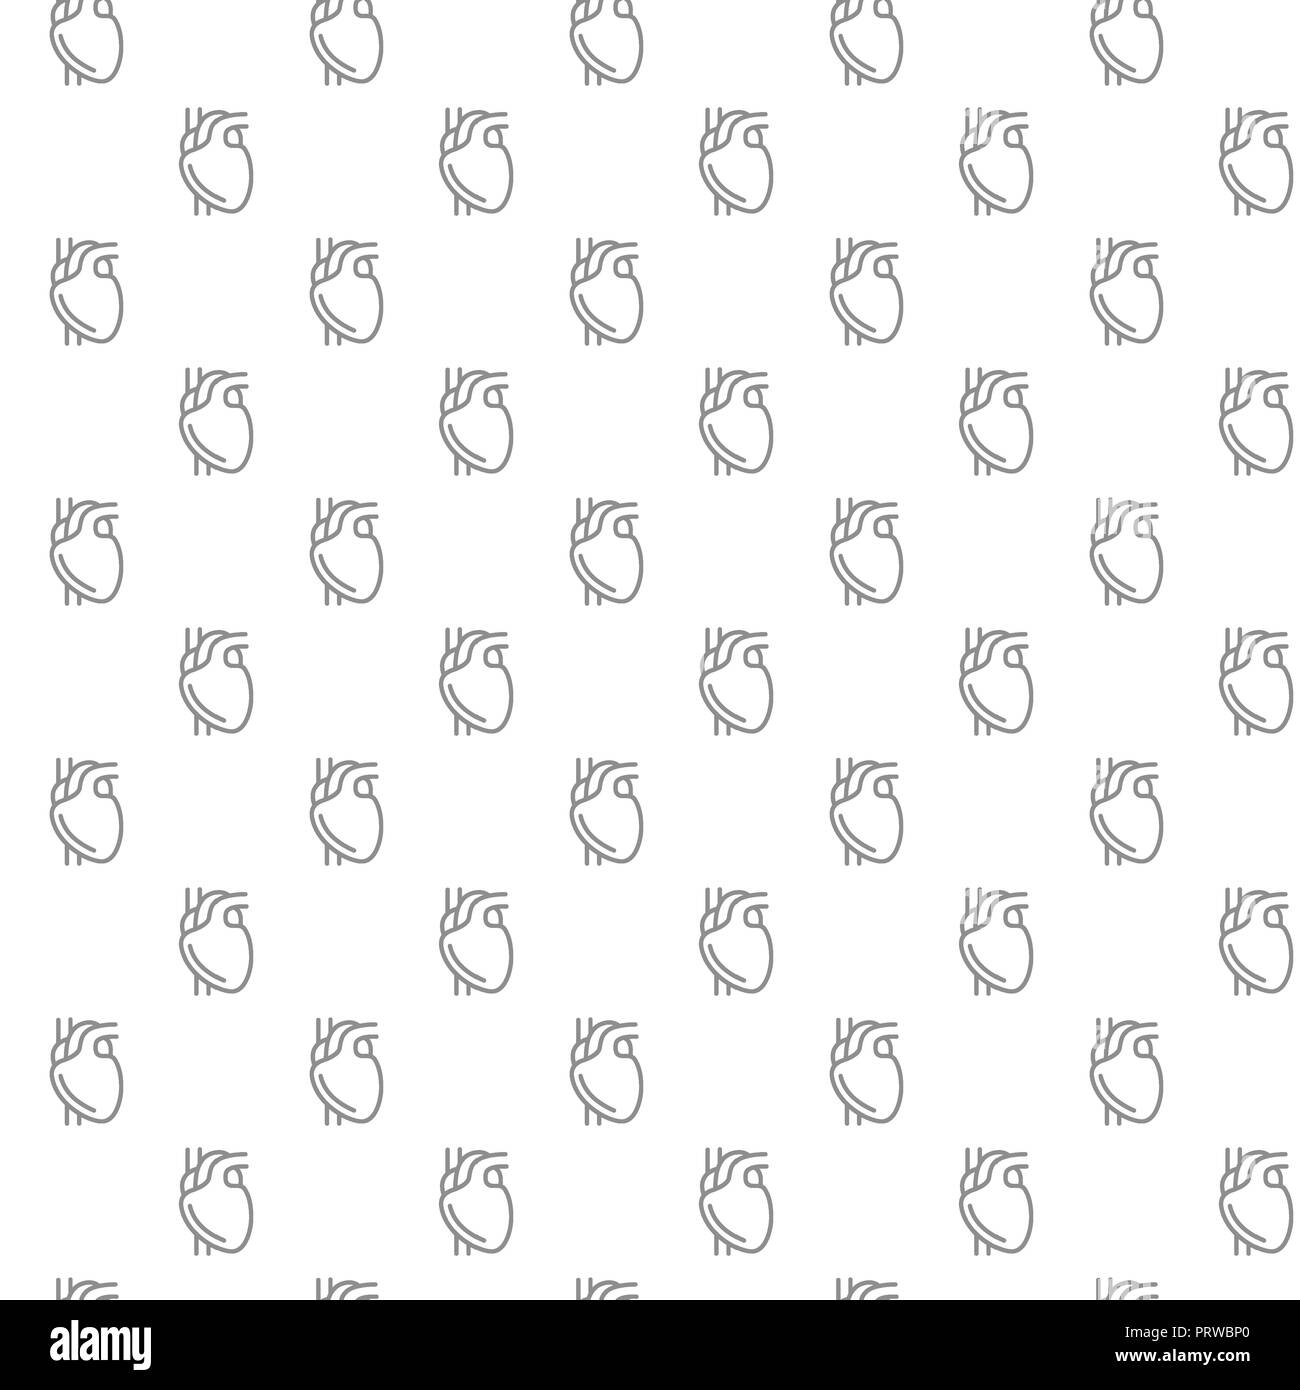 Unique heart seamless pattern with various icons and symbols on white background flat illustration - Stock Image